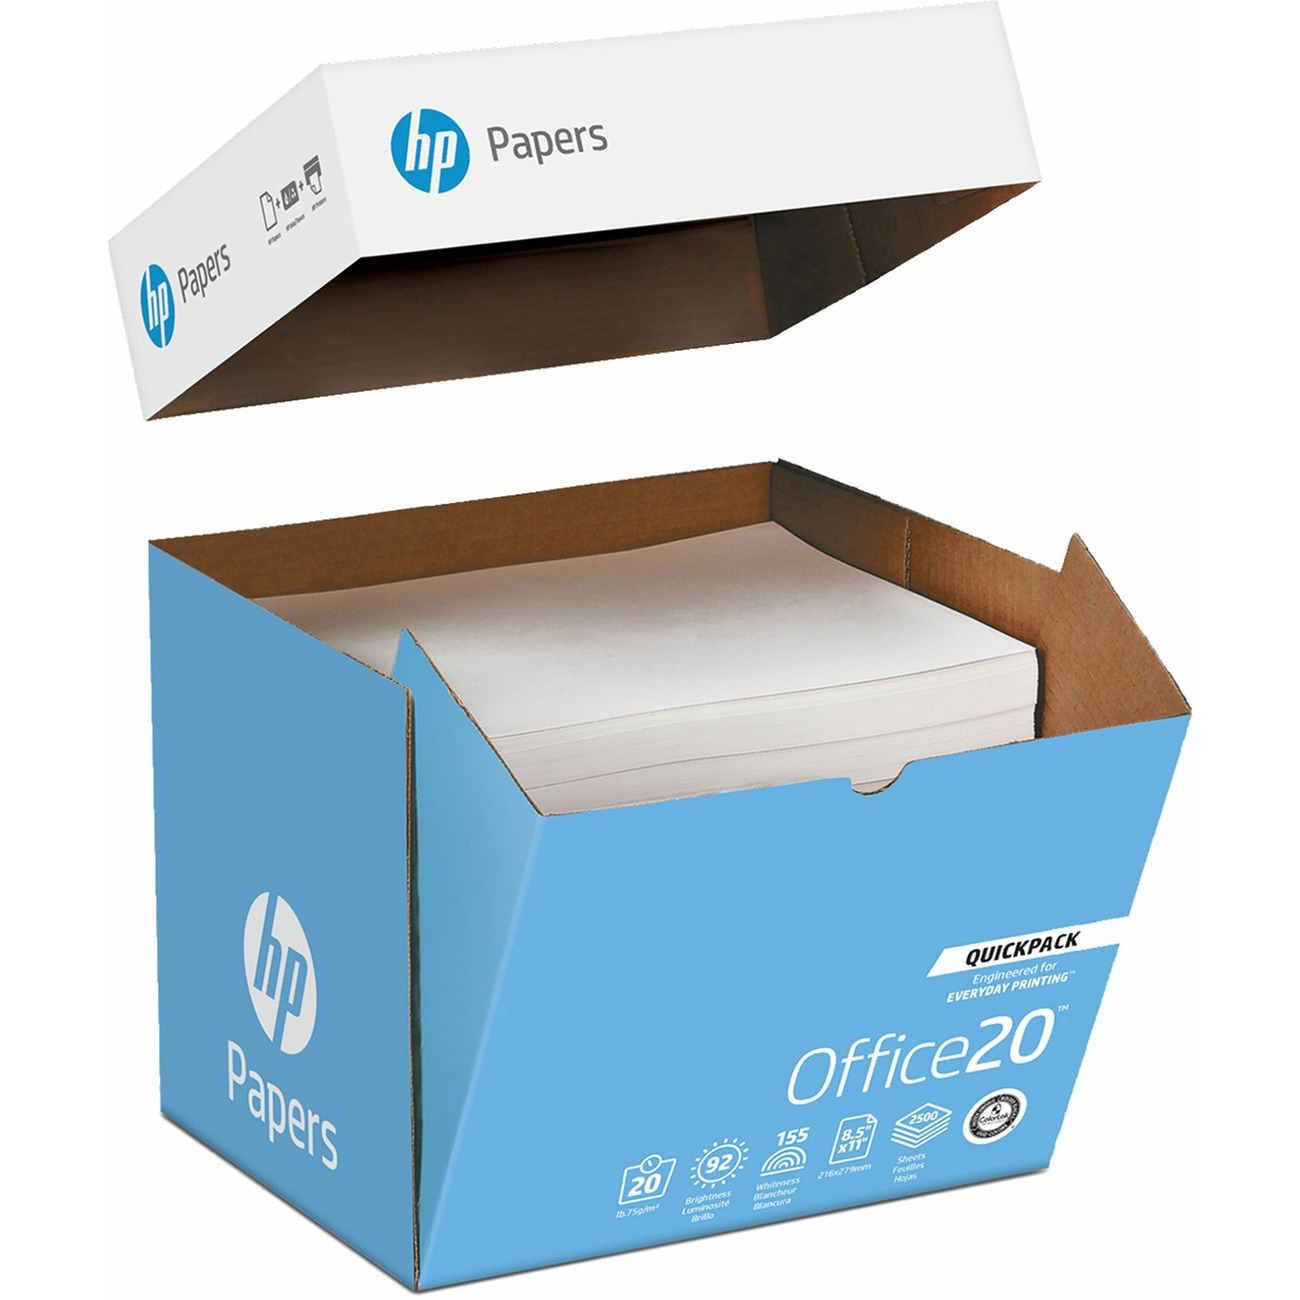 What is weight of 10 reams of 20 lb paper?